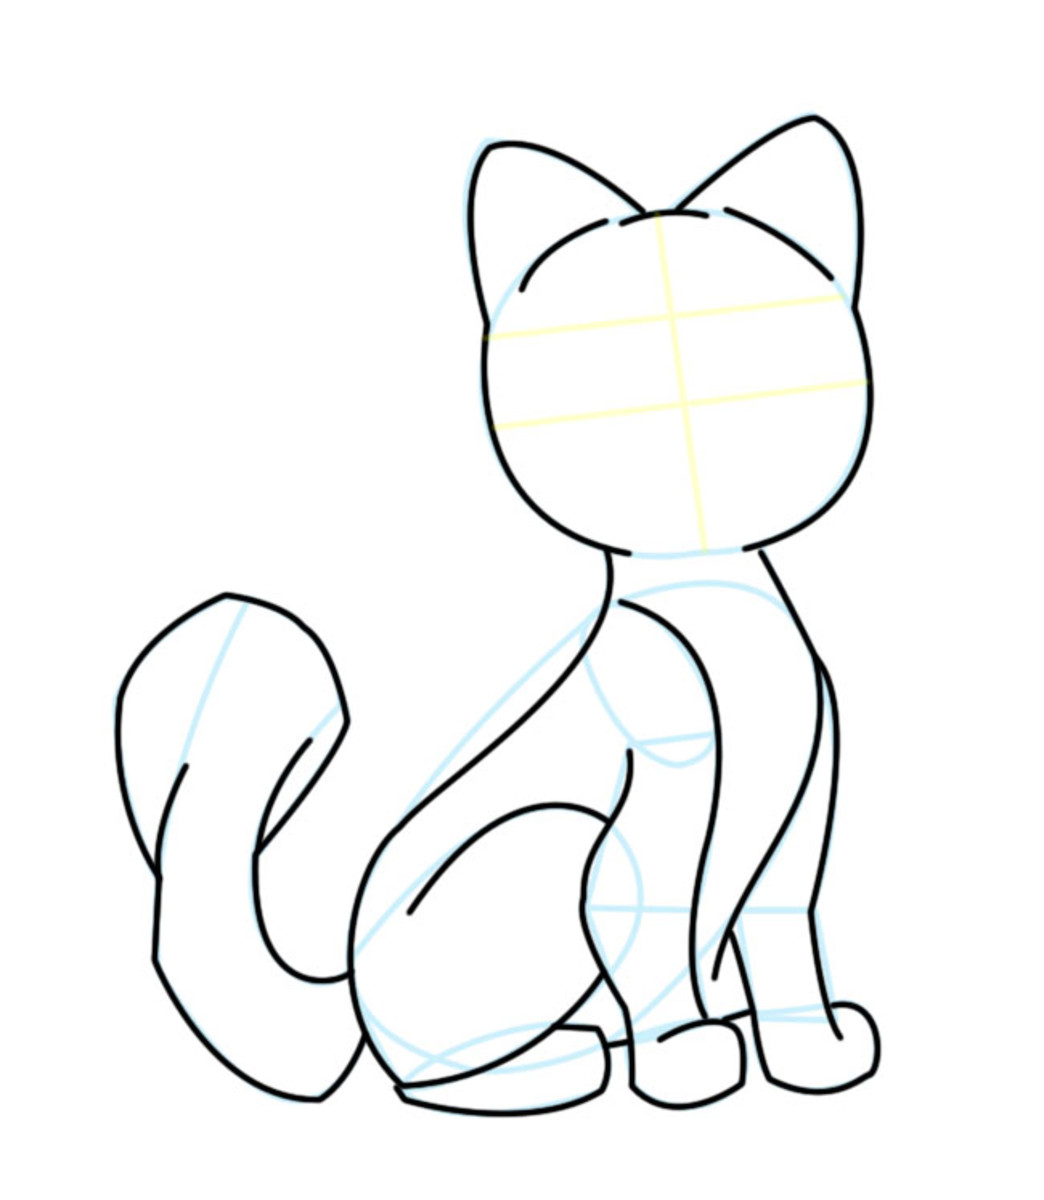 Darken your sketch lines and bring out the cats form erase all other unnecessary